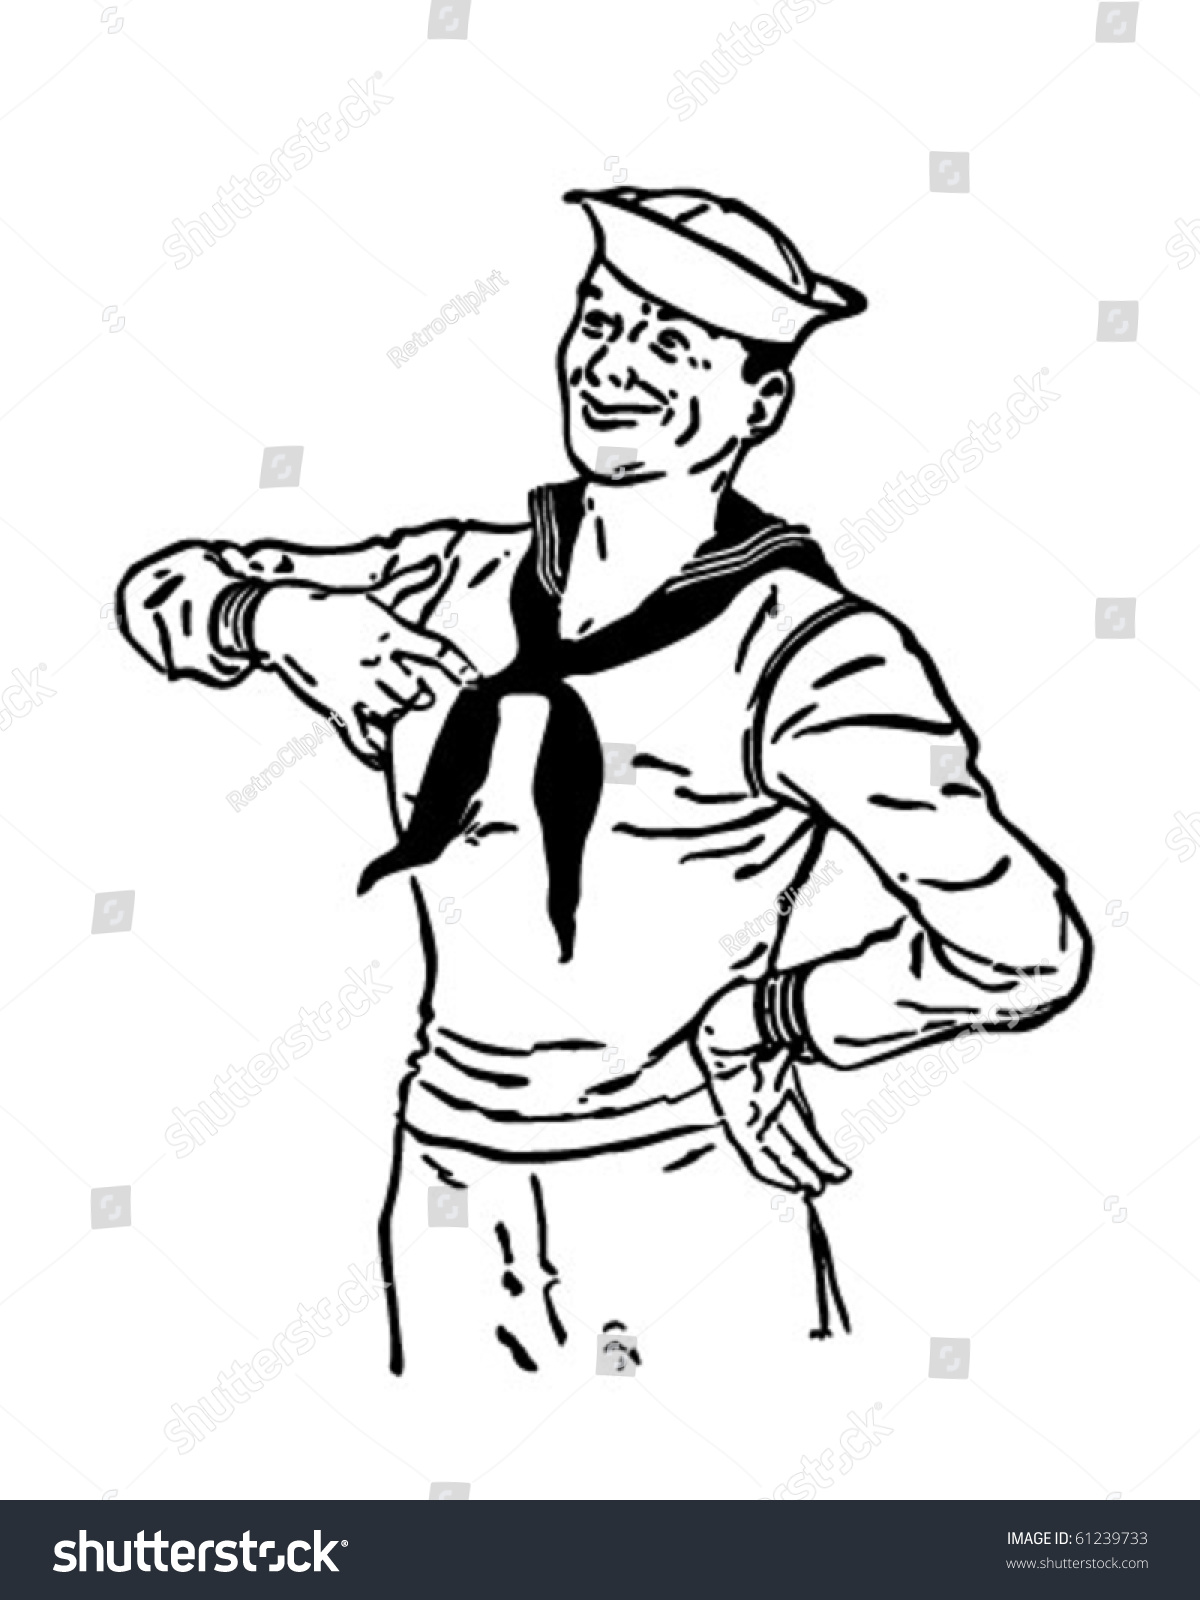 Proud Sailor Retro Clip Art Stock Vector 61239733 - Shutterstock